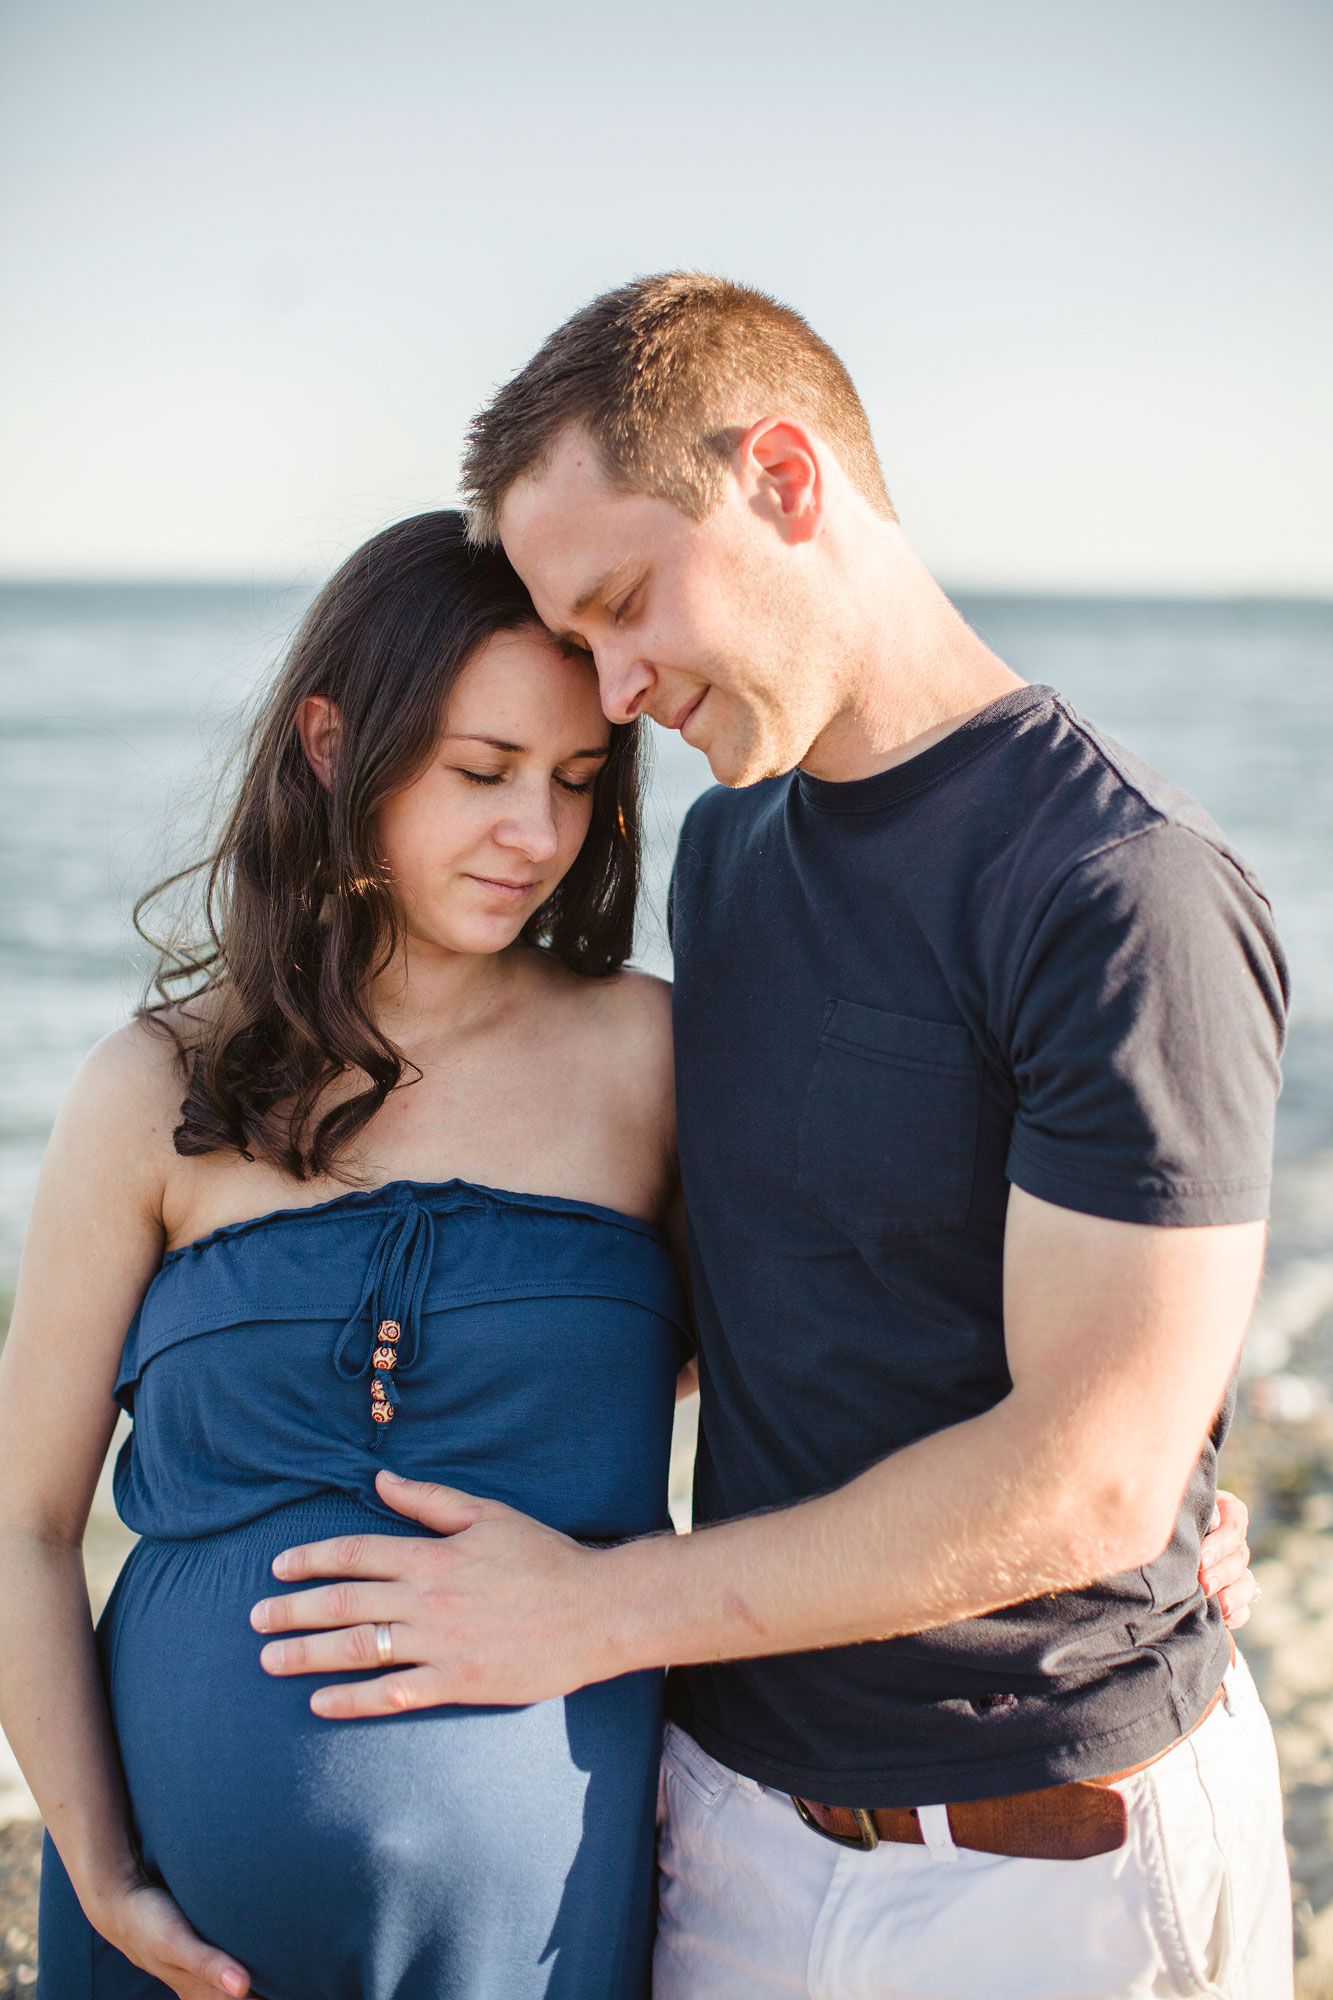 Milford Connecticut Maternity Photography